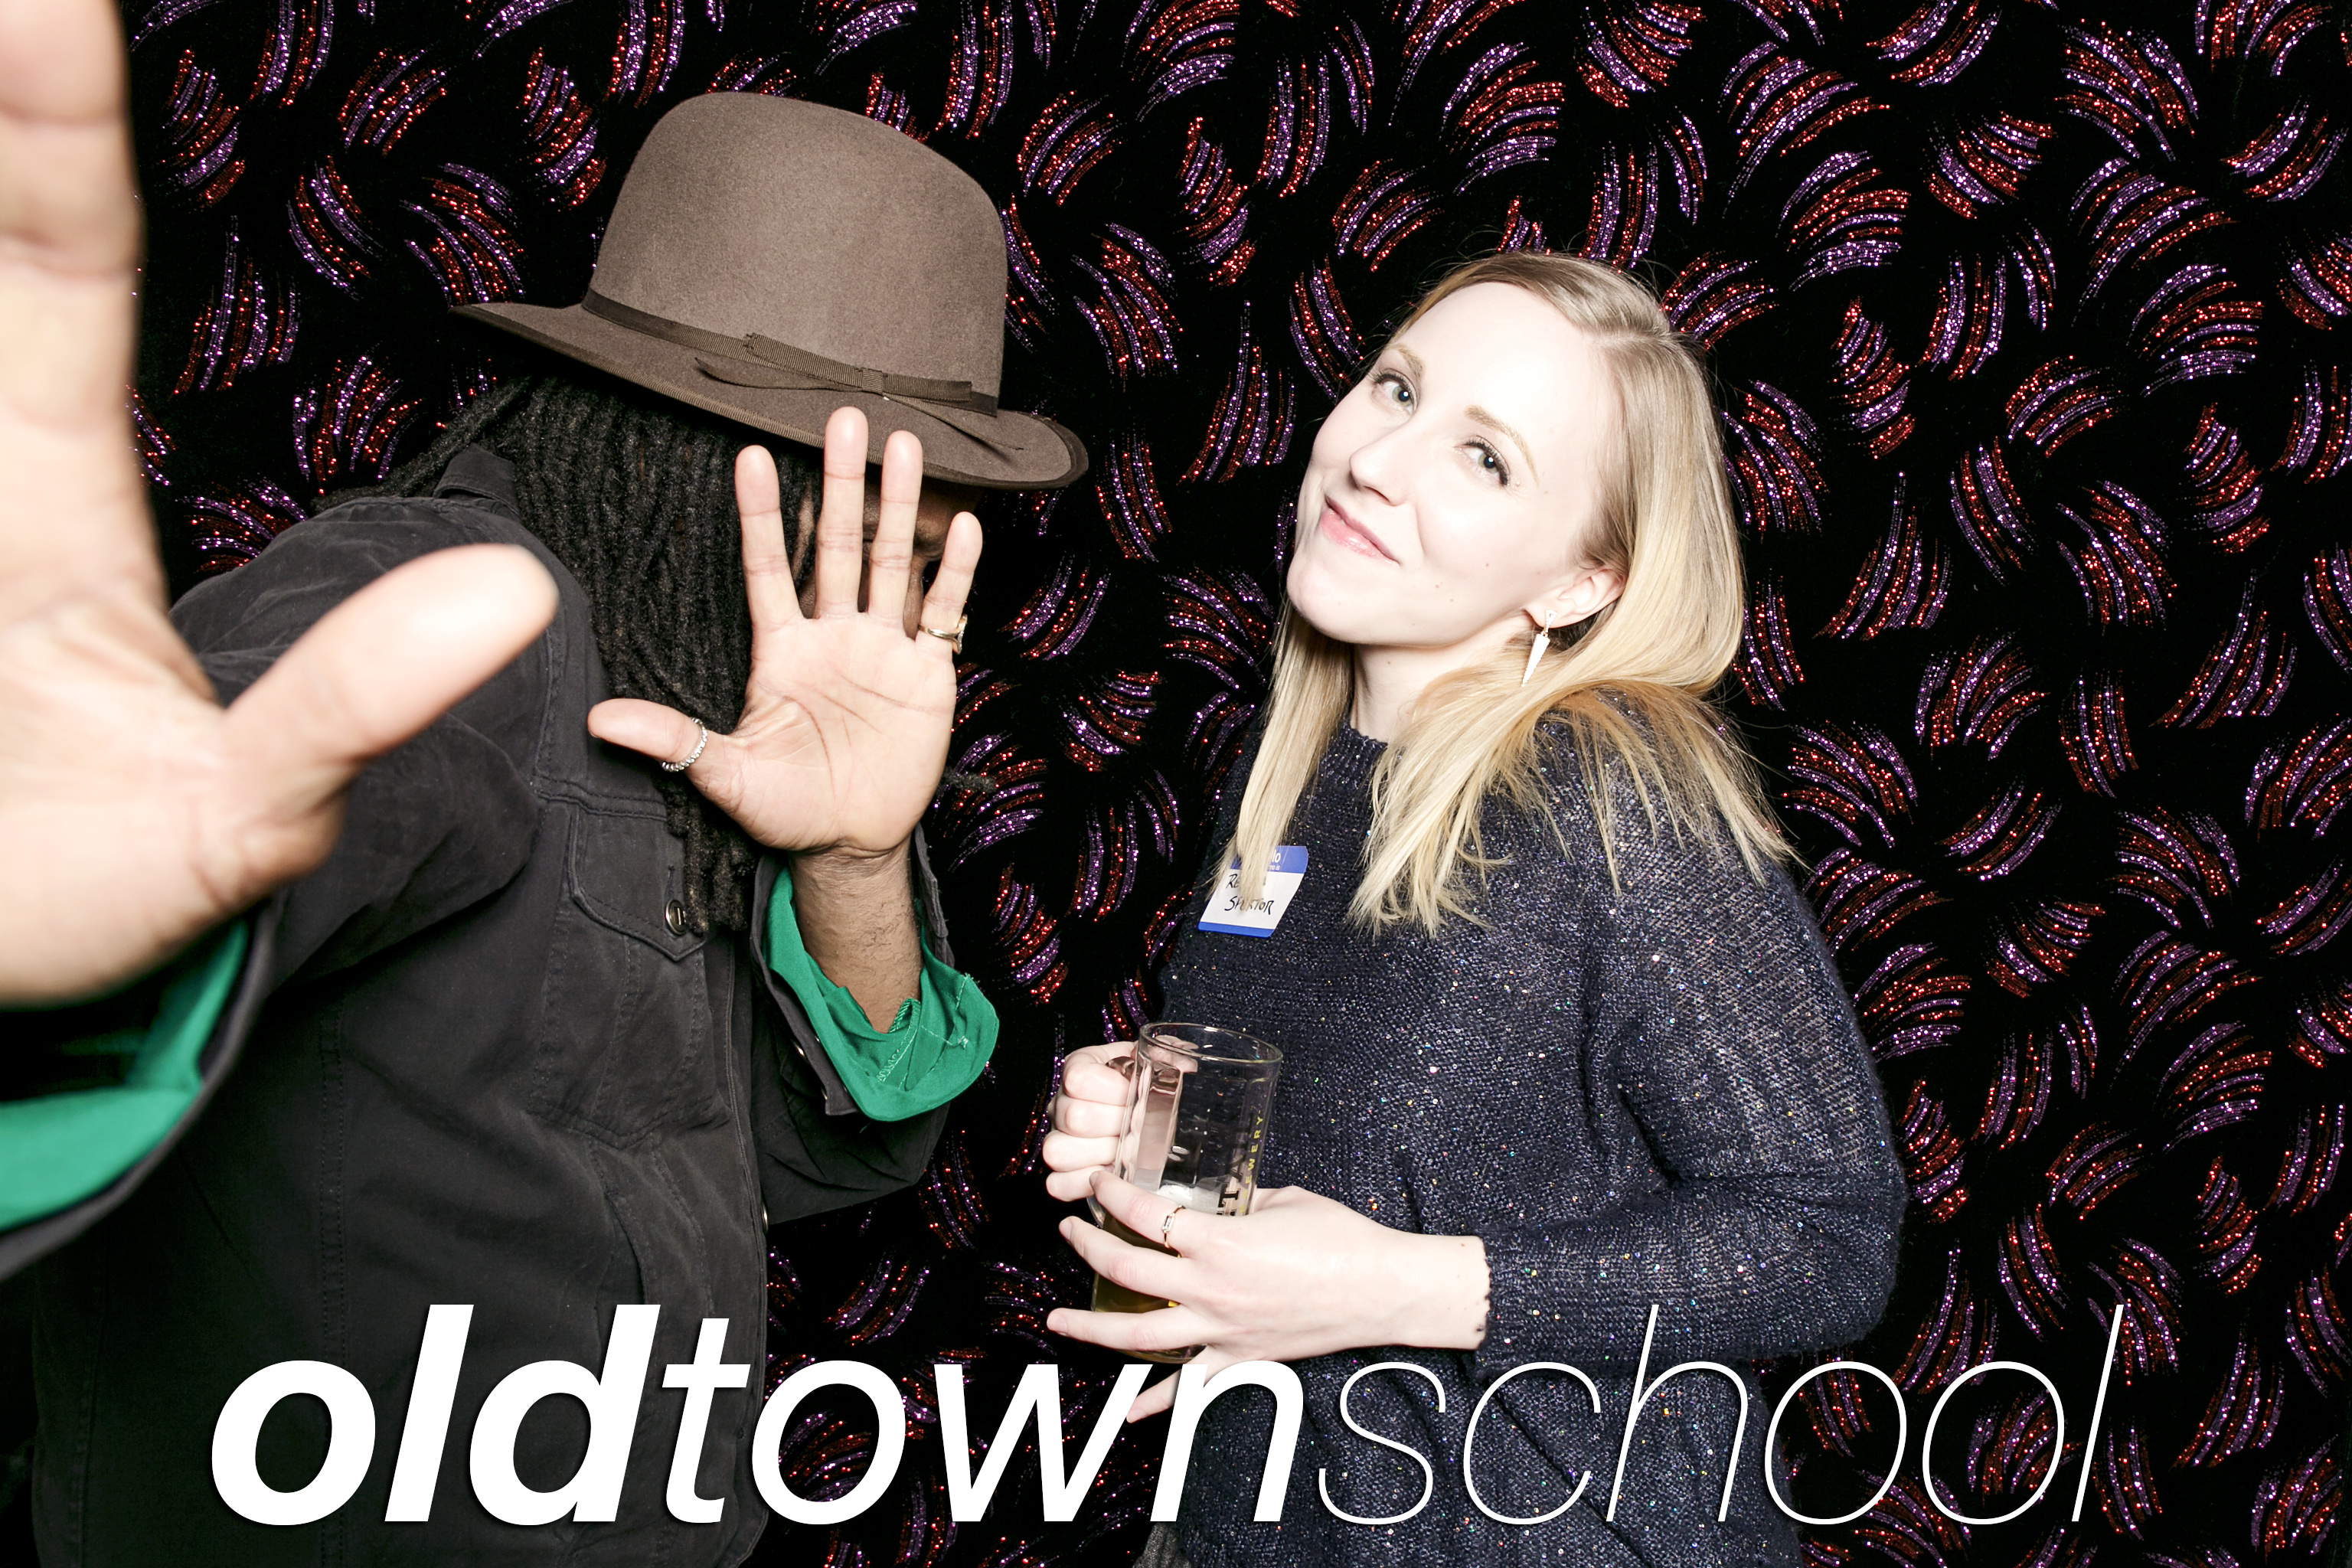 portrait booth photos from the old town school of folk music holiday party, january 2018